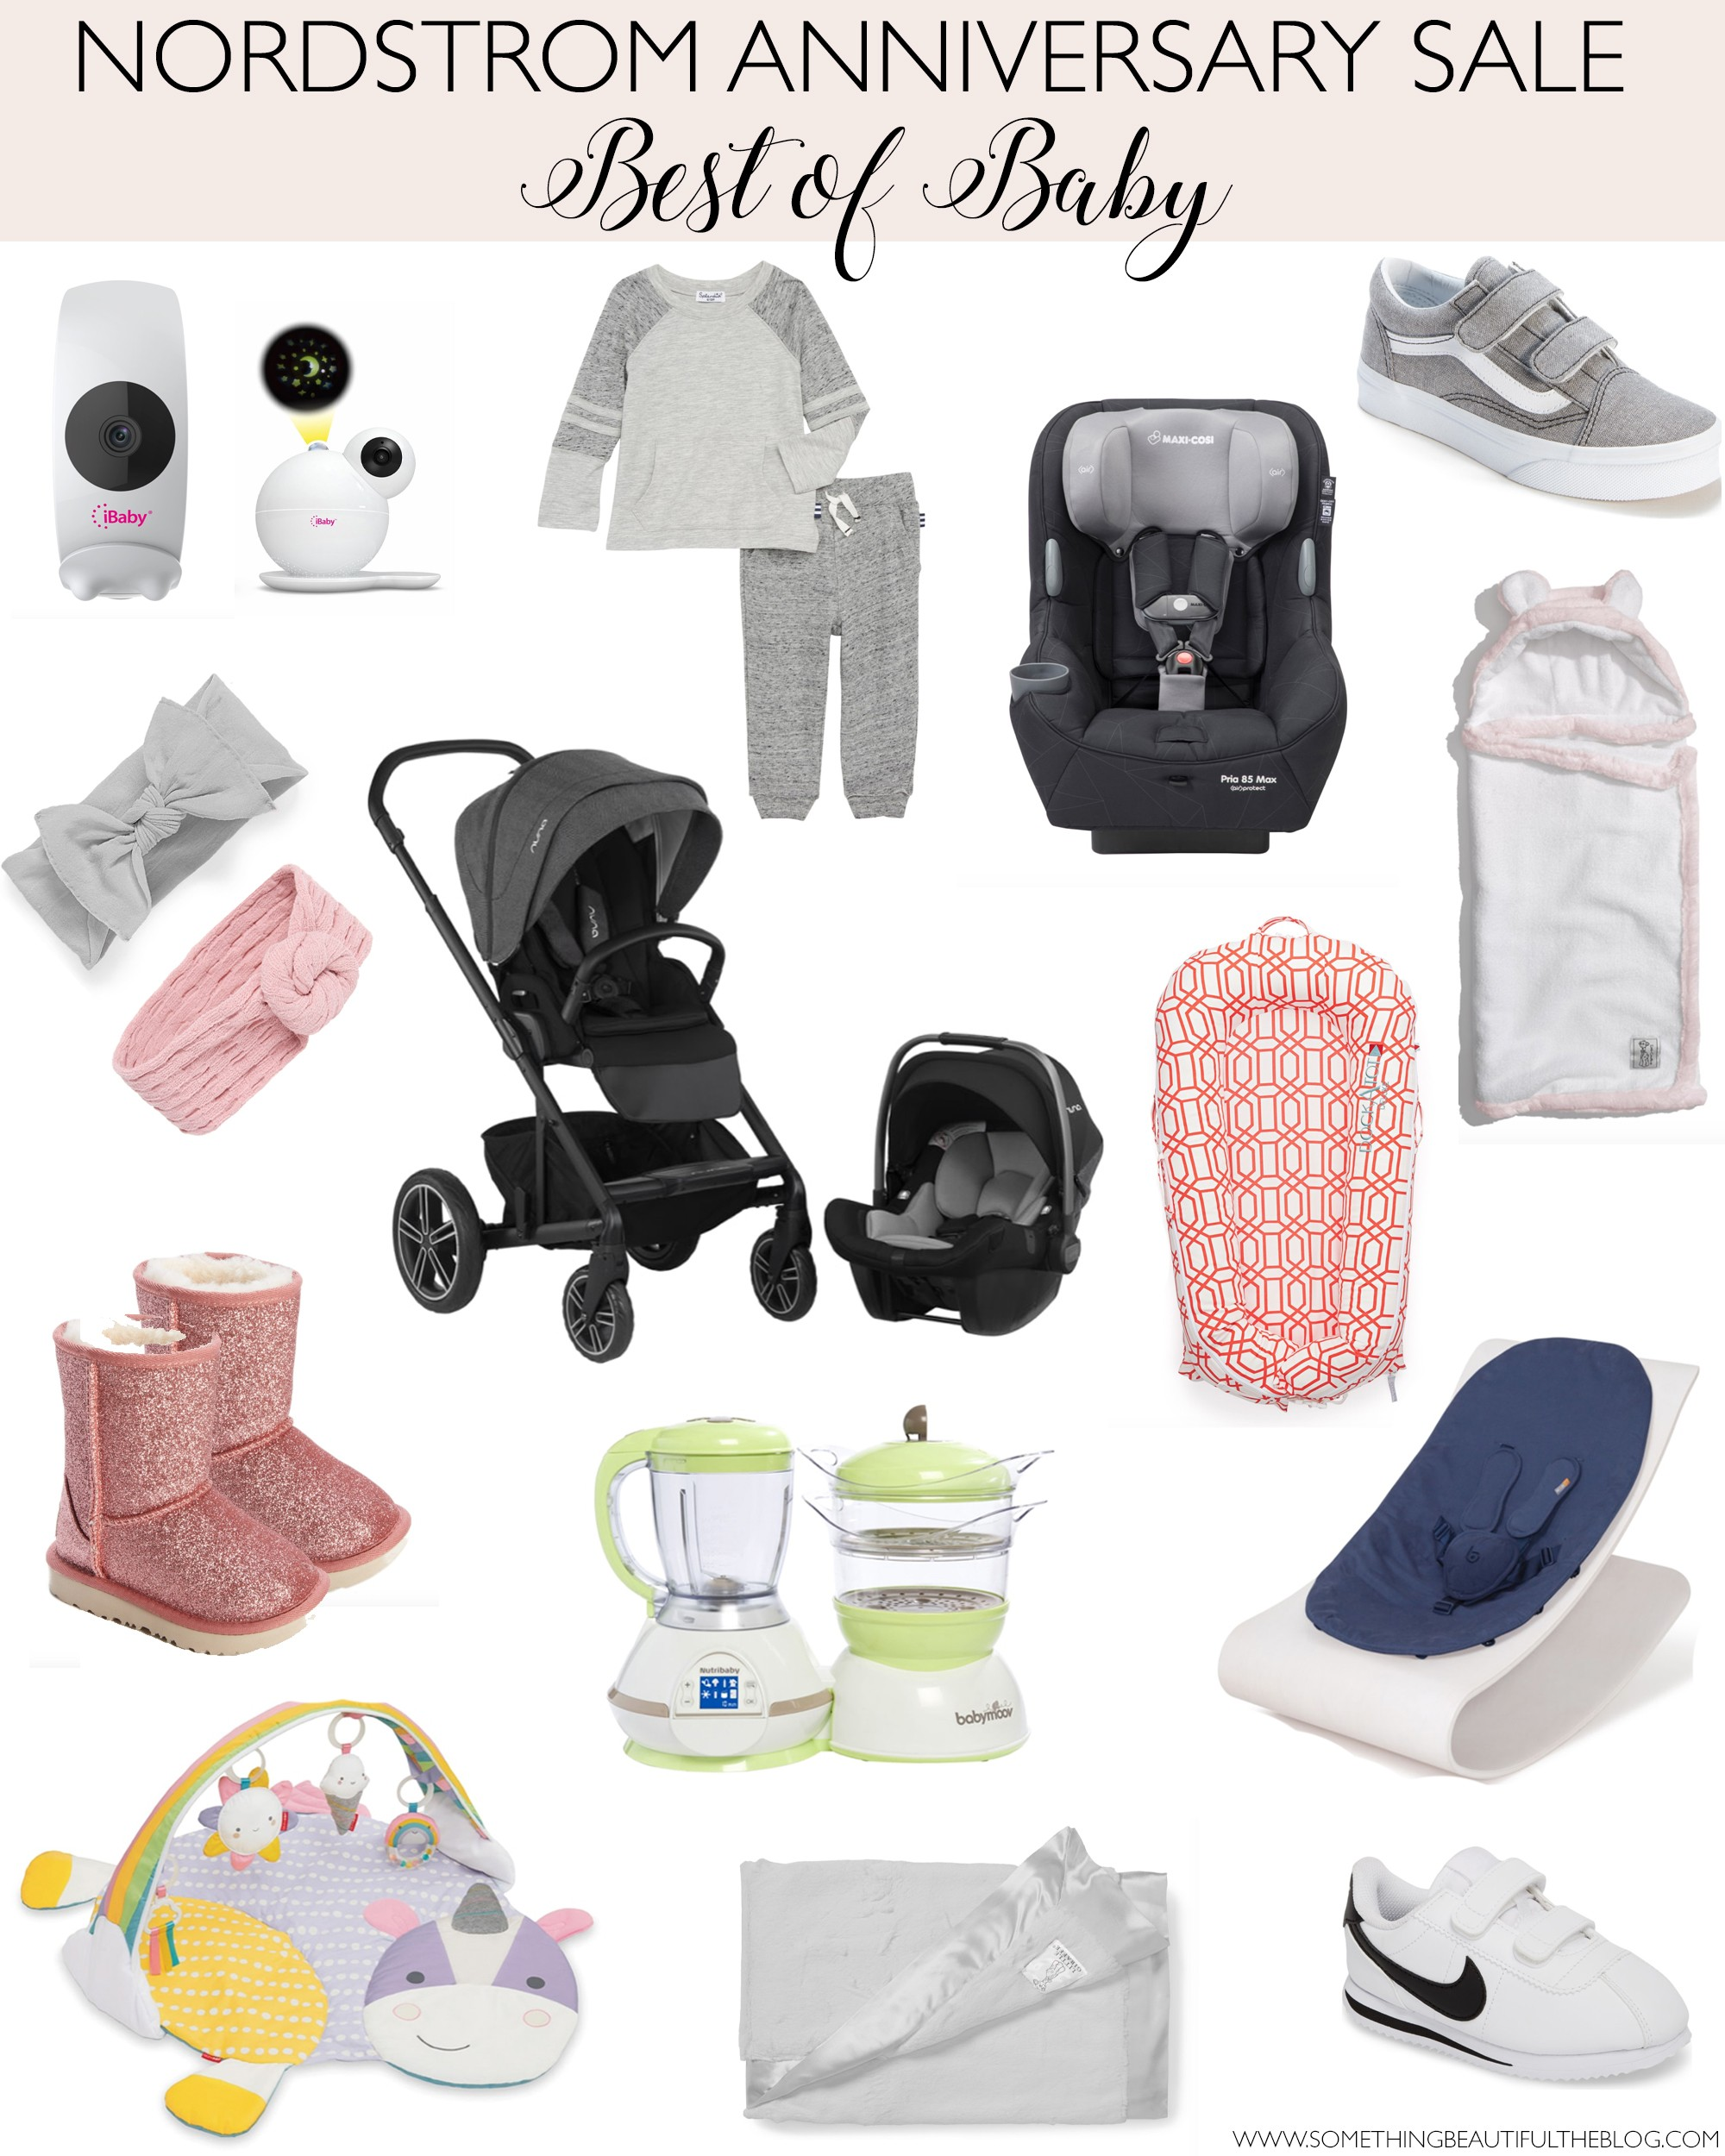 09ffd17c32f7 Best of Baby. CLICK ON ANY OF THE ITEMS BELOW TO BE TAKEN TO THE PRODUCT  PAGE! This year is an extra special Nordstrom Anniversary Sale ...